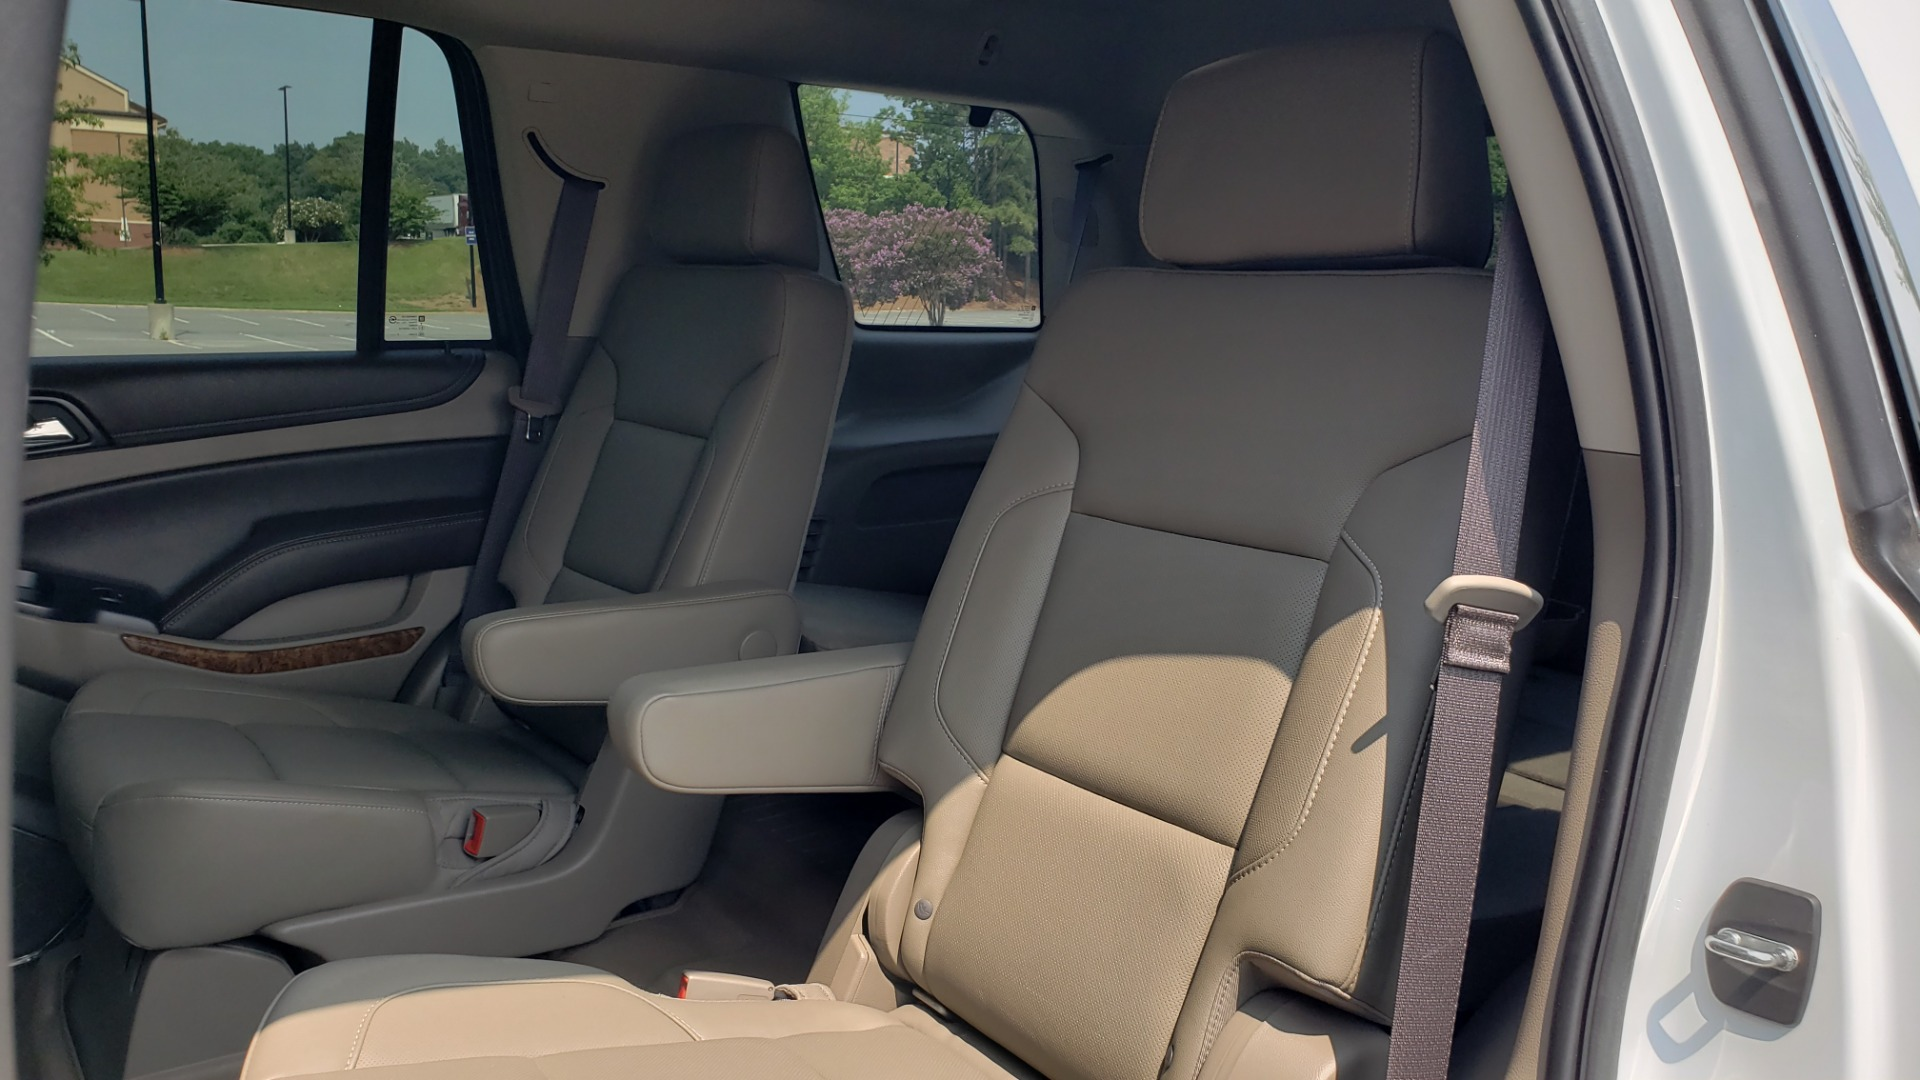 Used 2018 Chevrolet TAHOE PREMIER 4WD / NAV / SUNROOF / BOSE / 3-ROW / HUD / REARVIEW for sale $63,995 at Formula Imports in Charlotte NC 28227 68